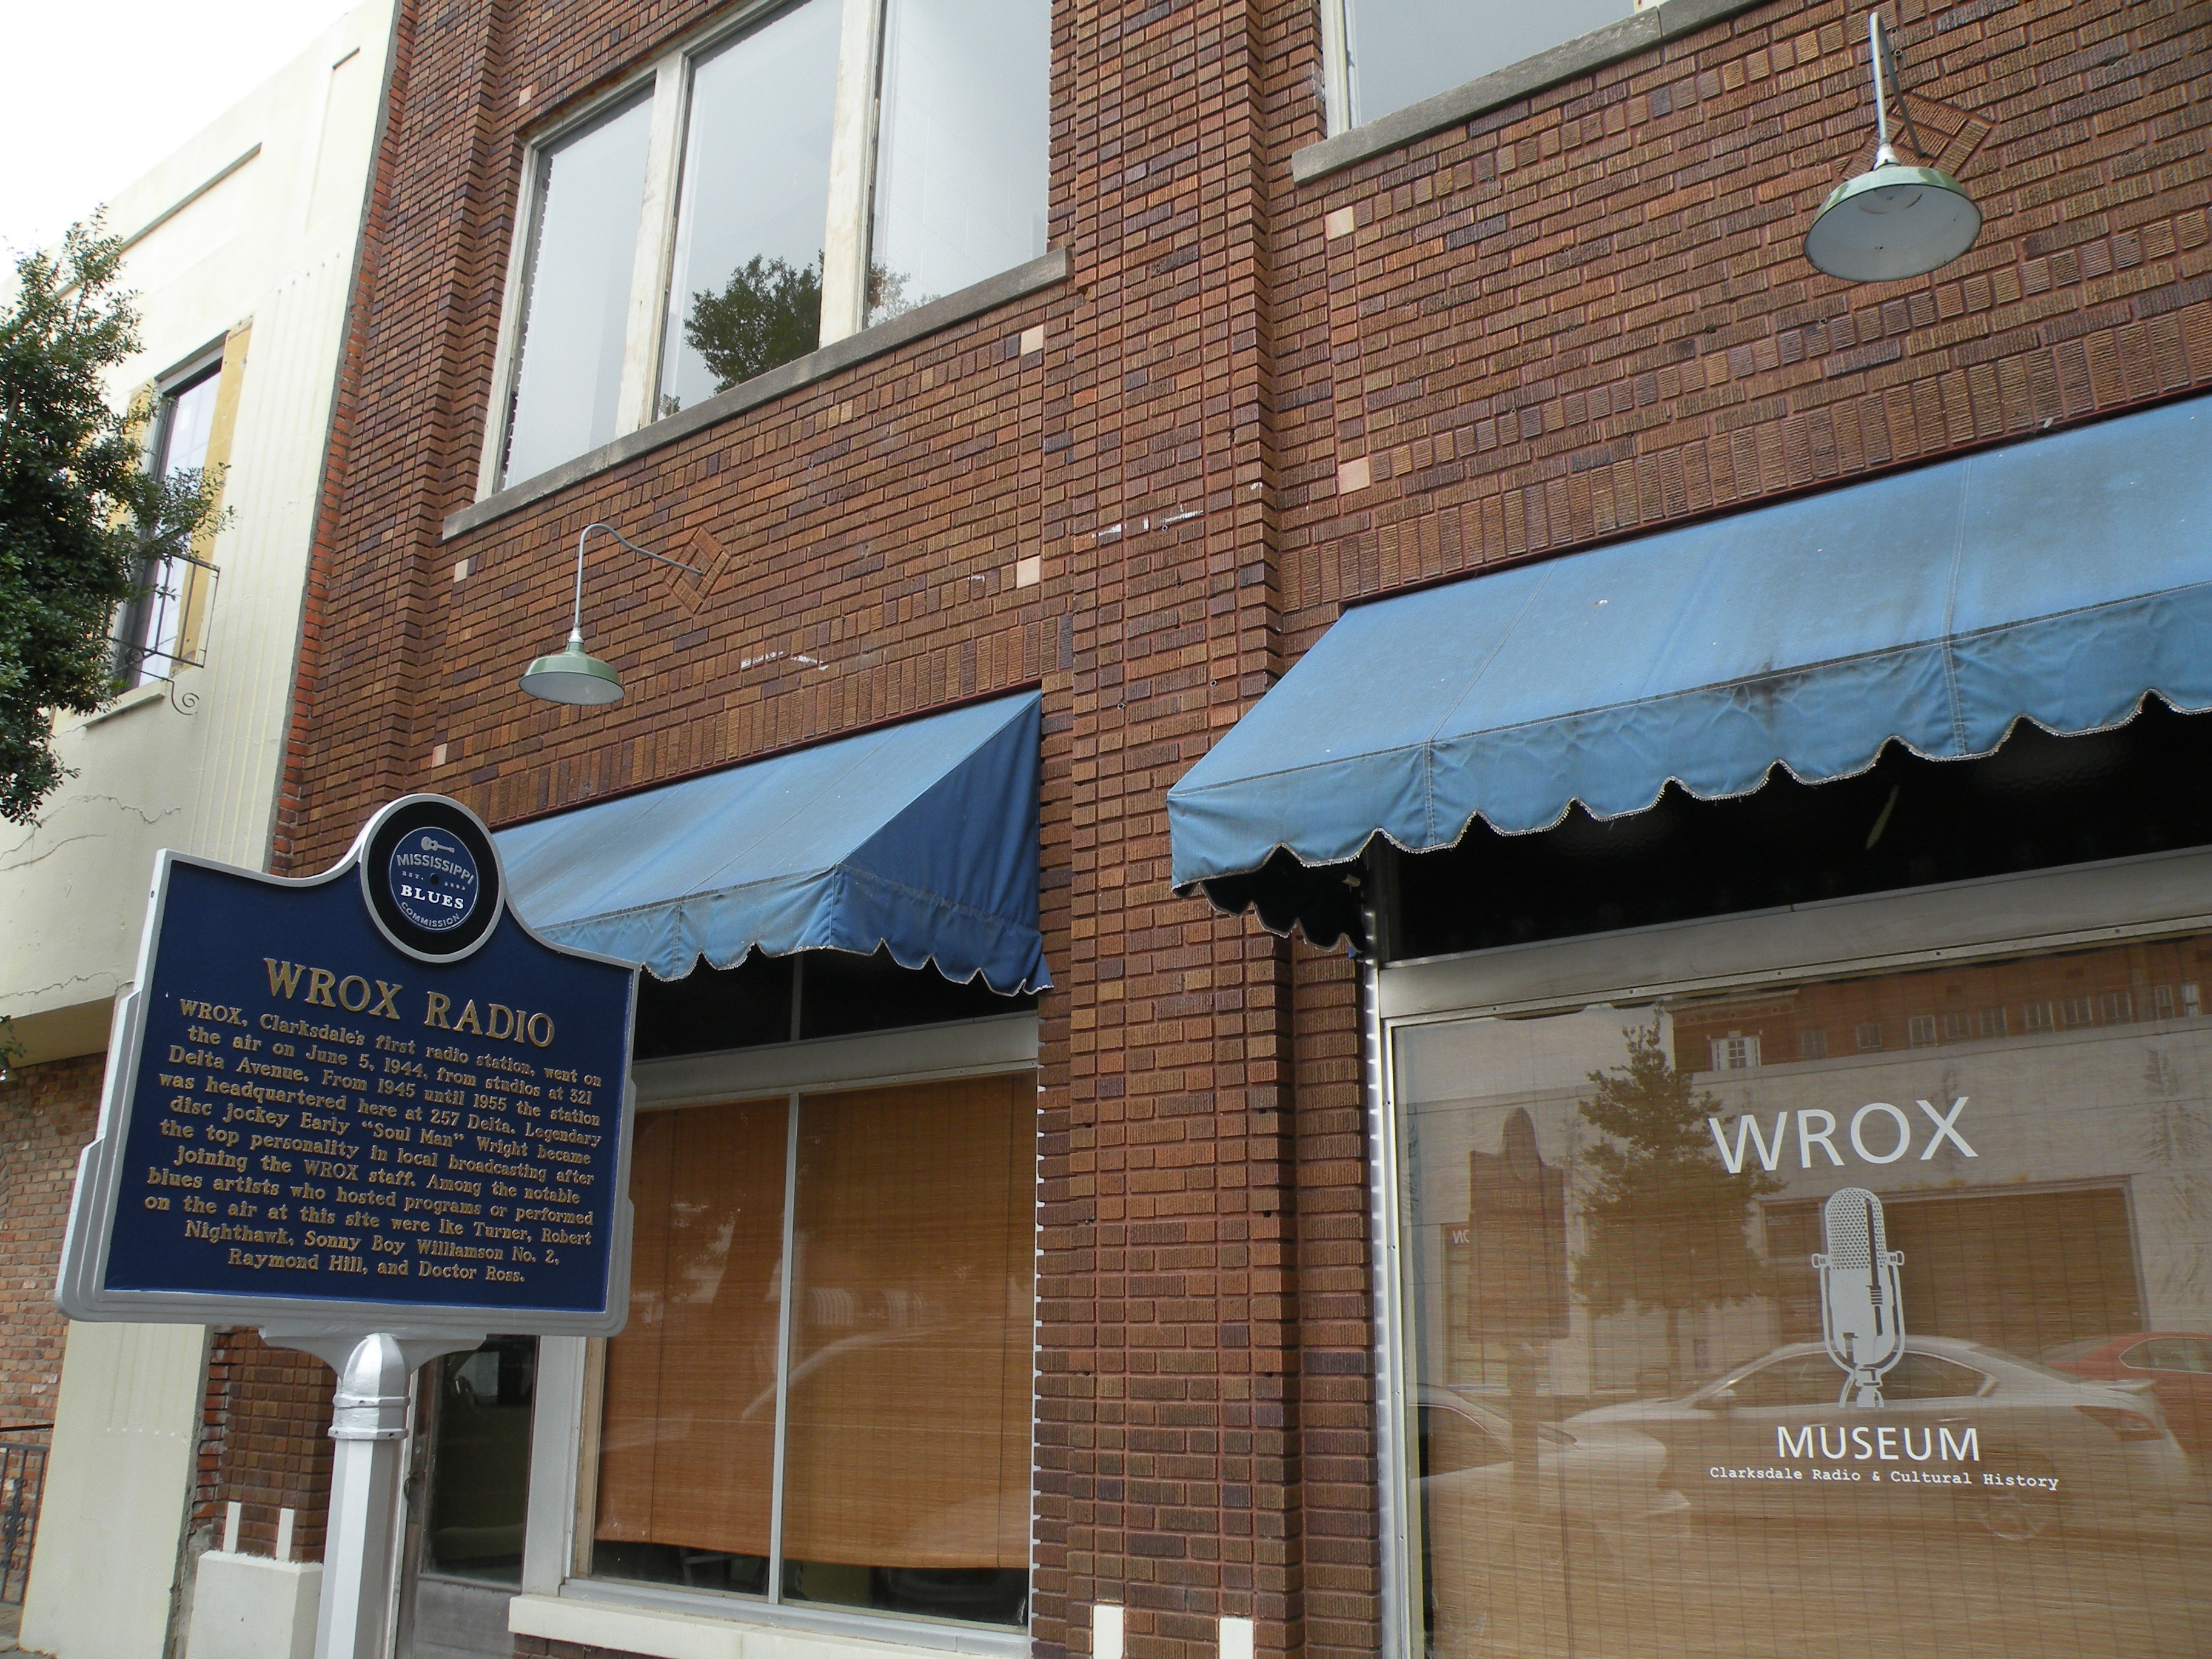 On the morning of June 5, 1944, Clarksdale's first radio station, the WROX, went on air in this building.